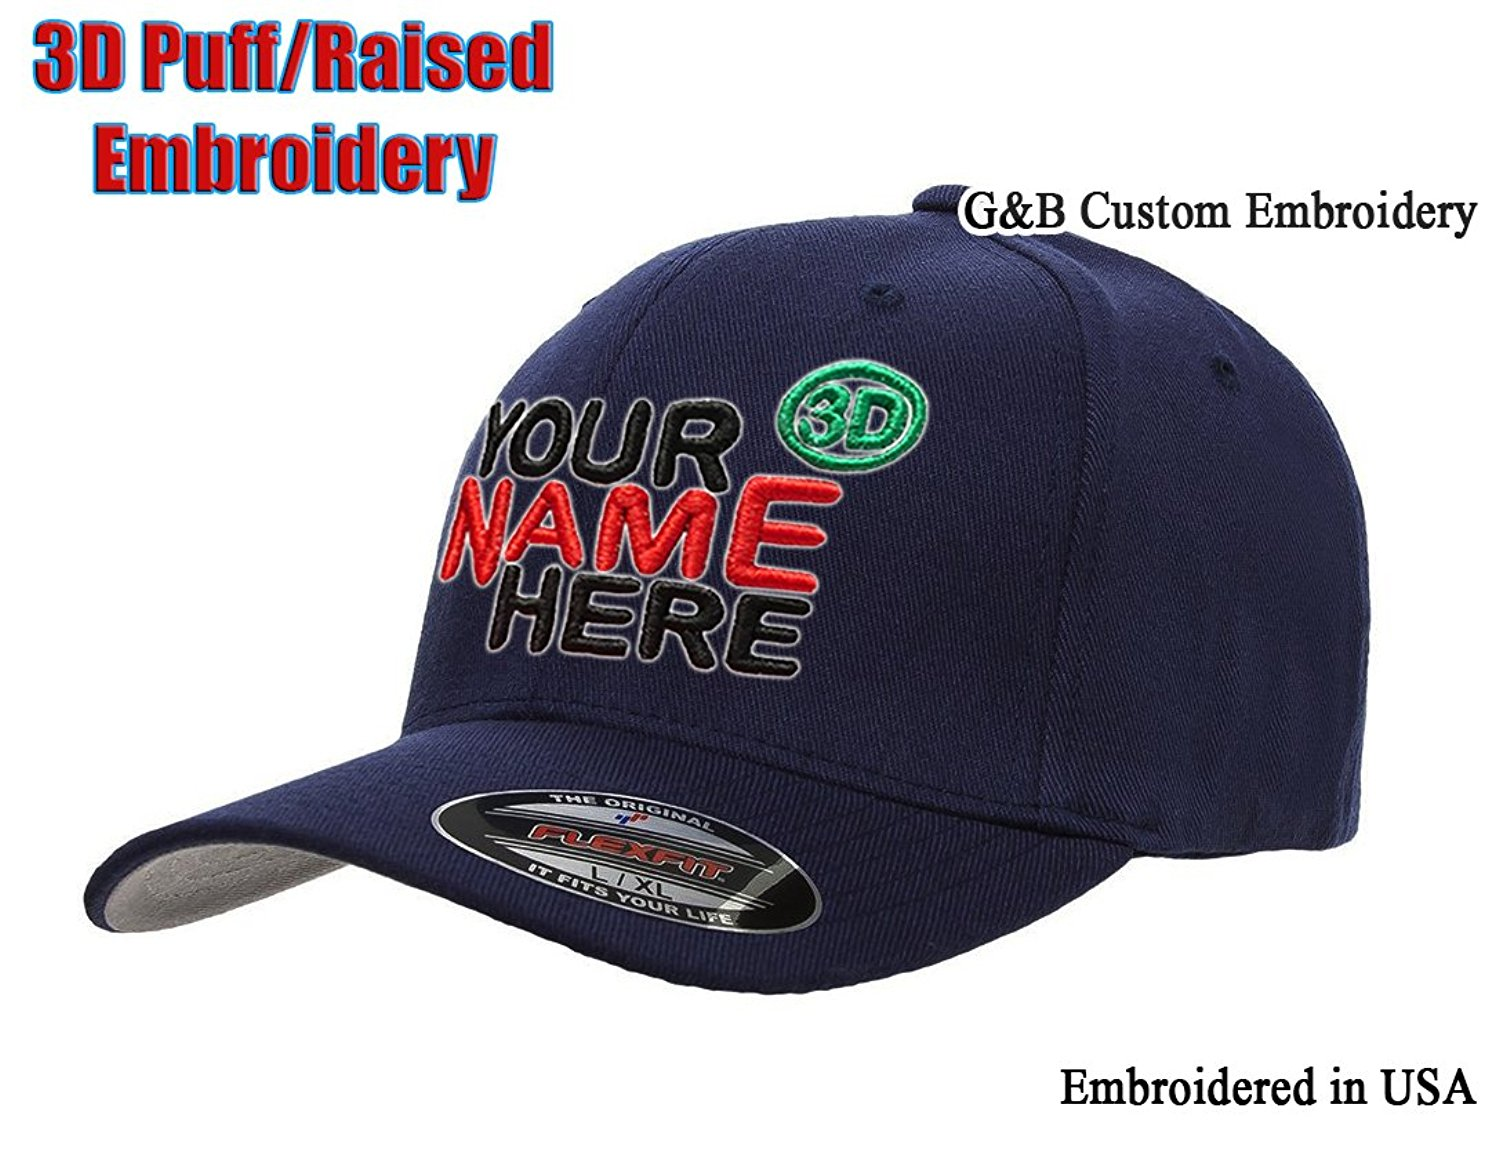 c10769f37efdcf Get Quotations · Raised/3D Puff Embroidered Custom Hat. Yupoong Snapback.  Flexfit 6477, 6277